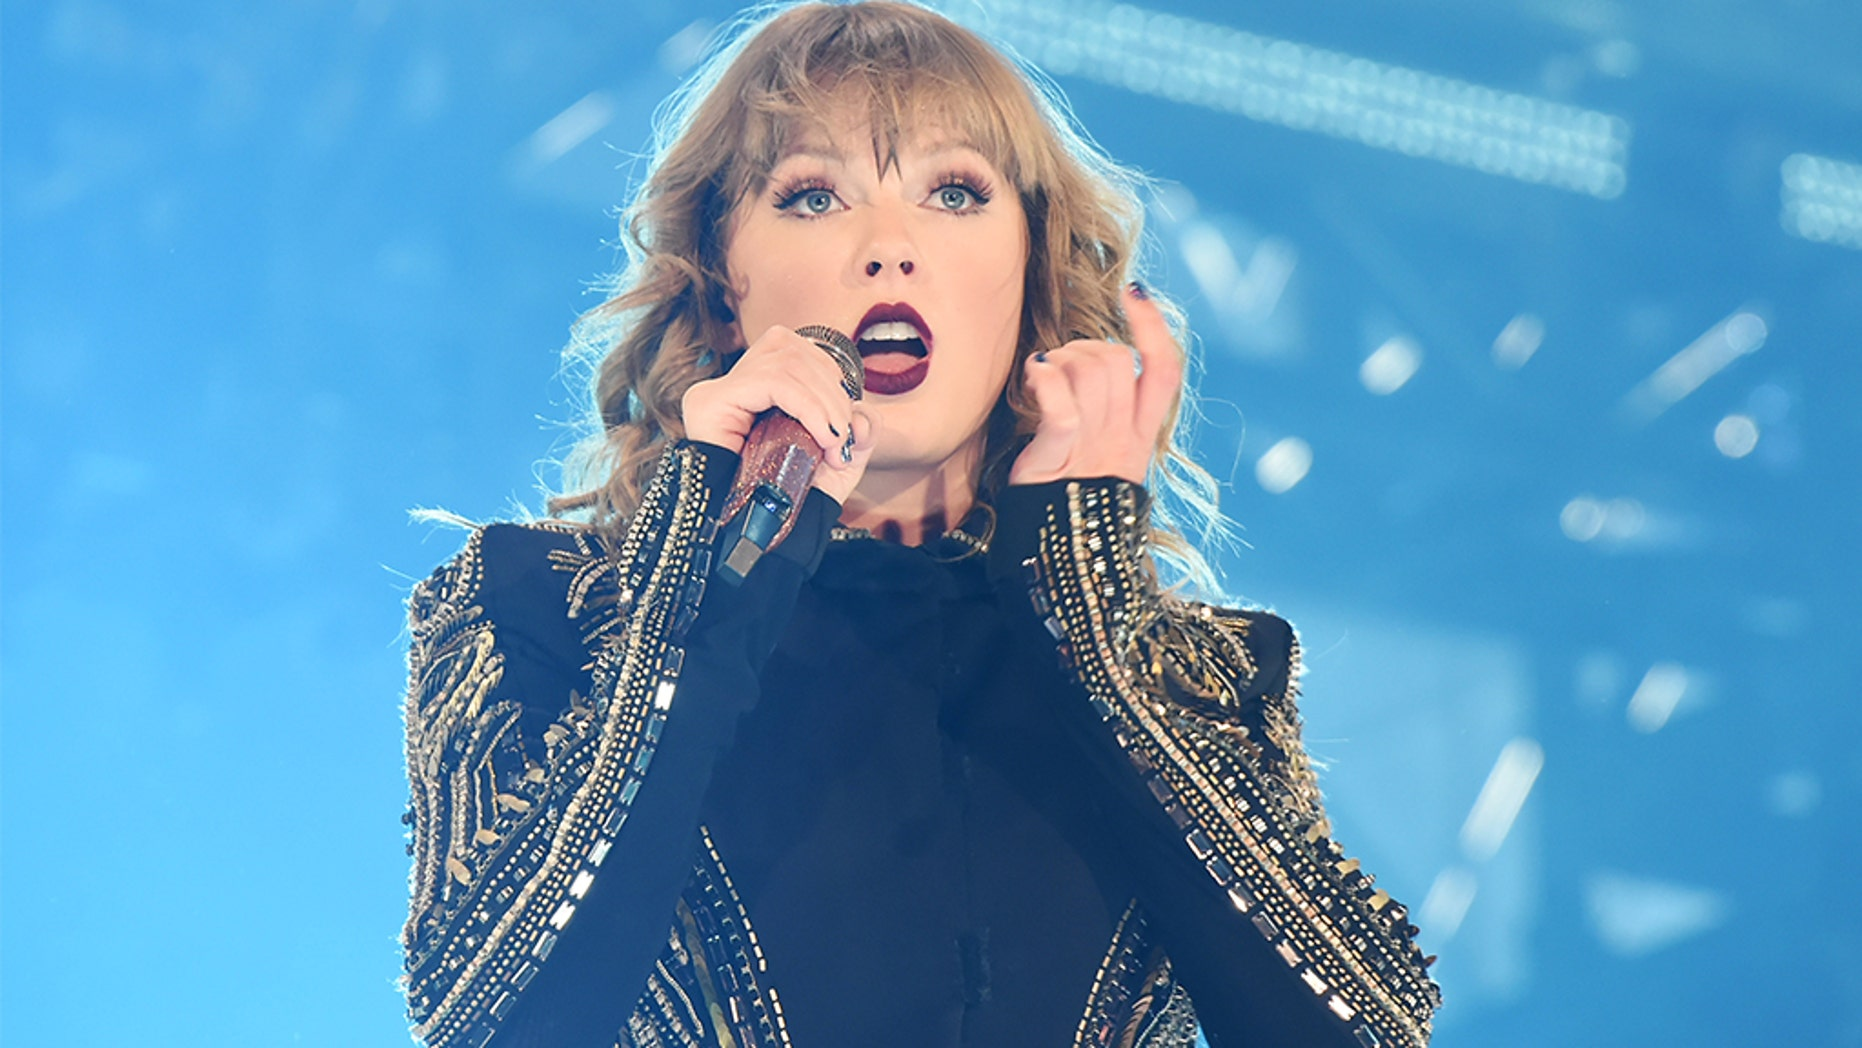 Taylor Swift opened up about what makes a good breakup song in a recent essay.